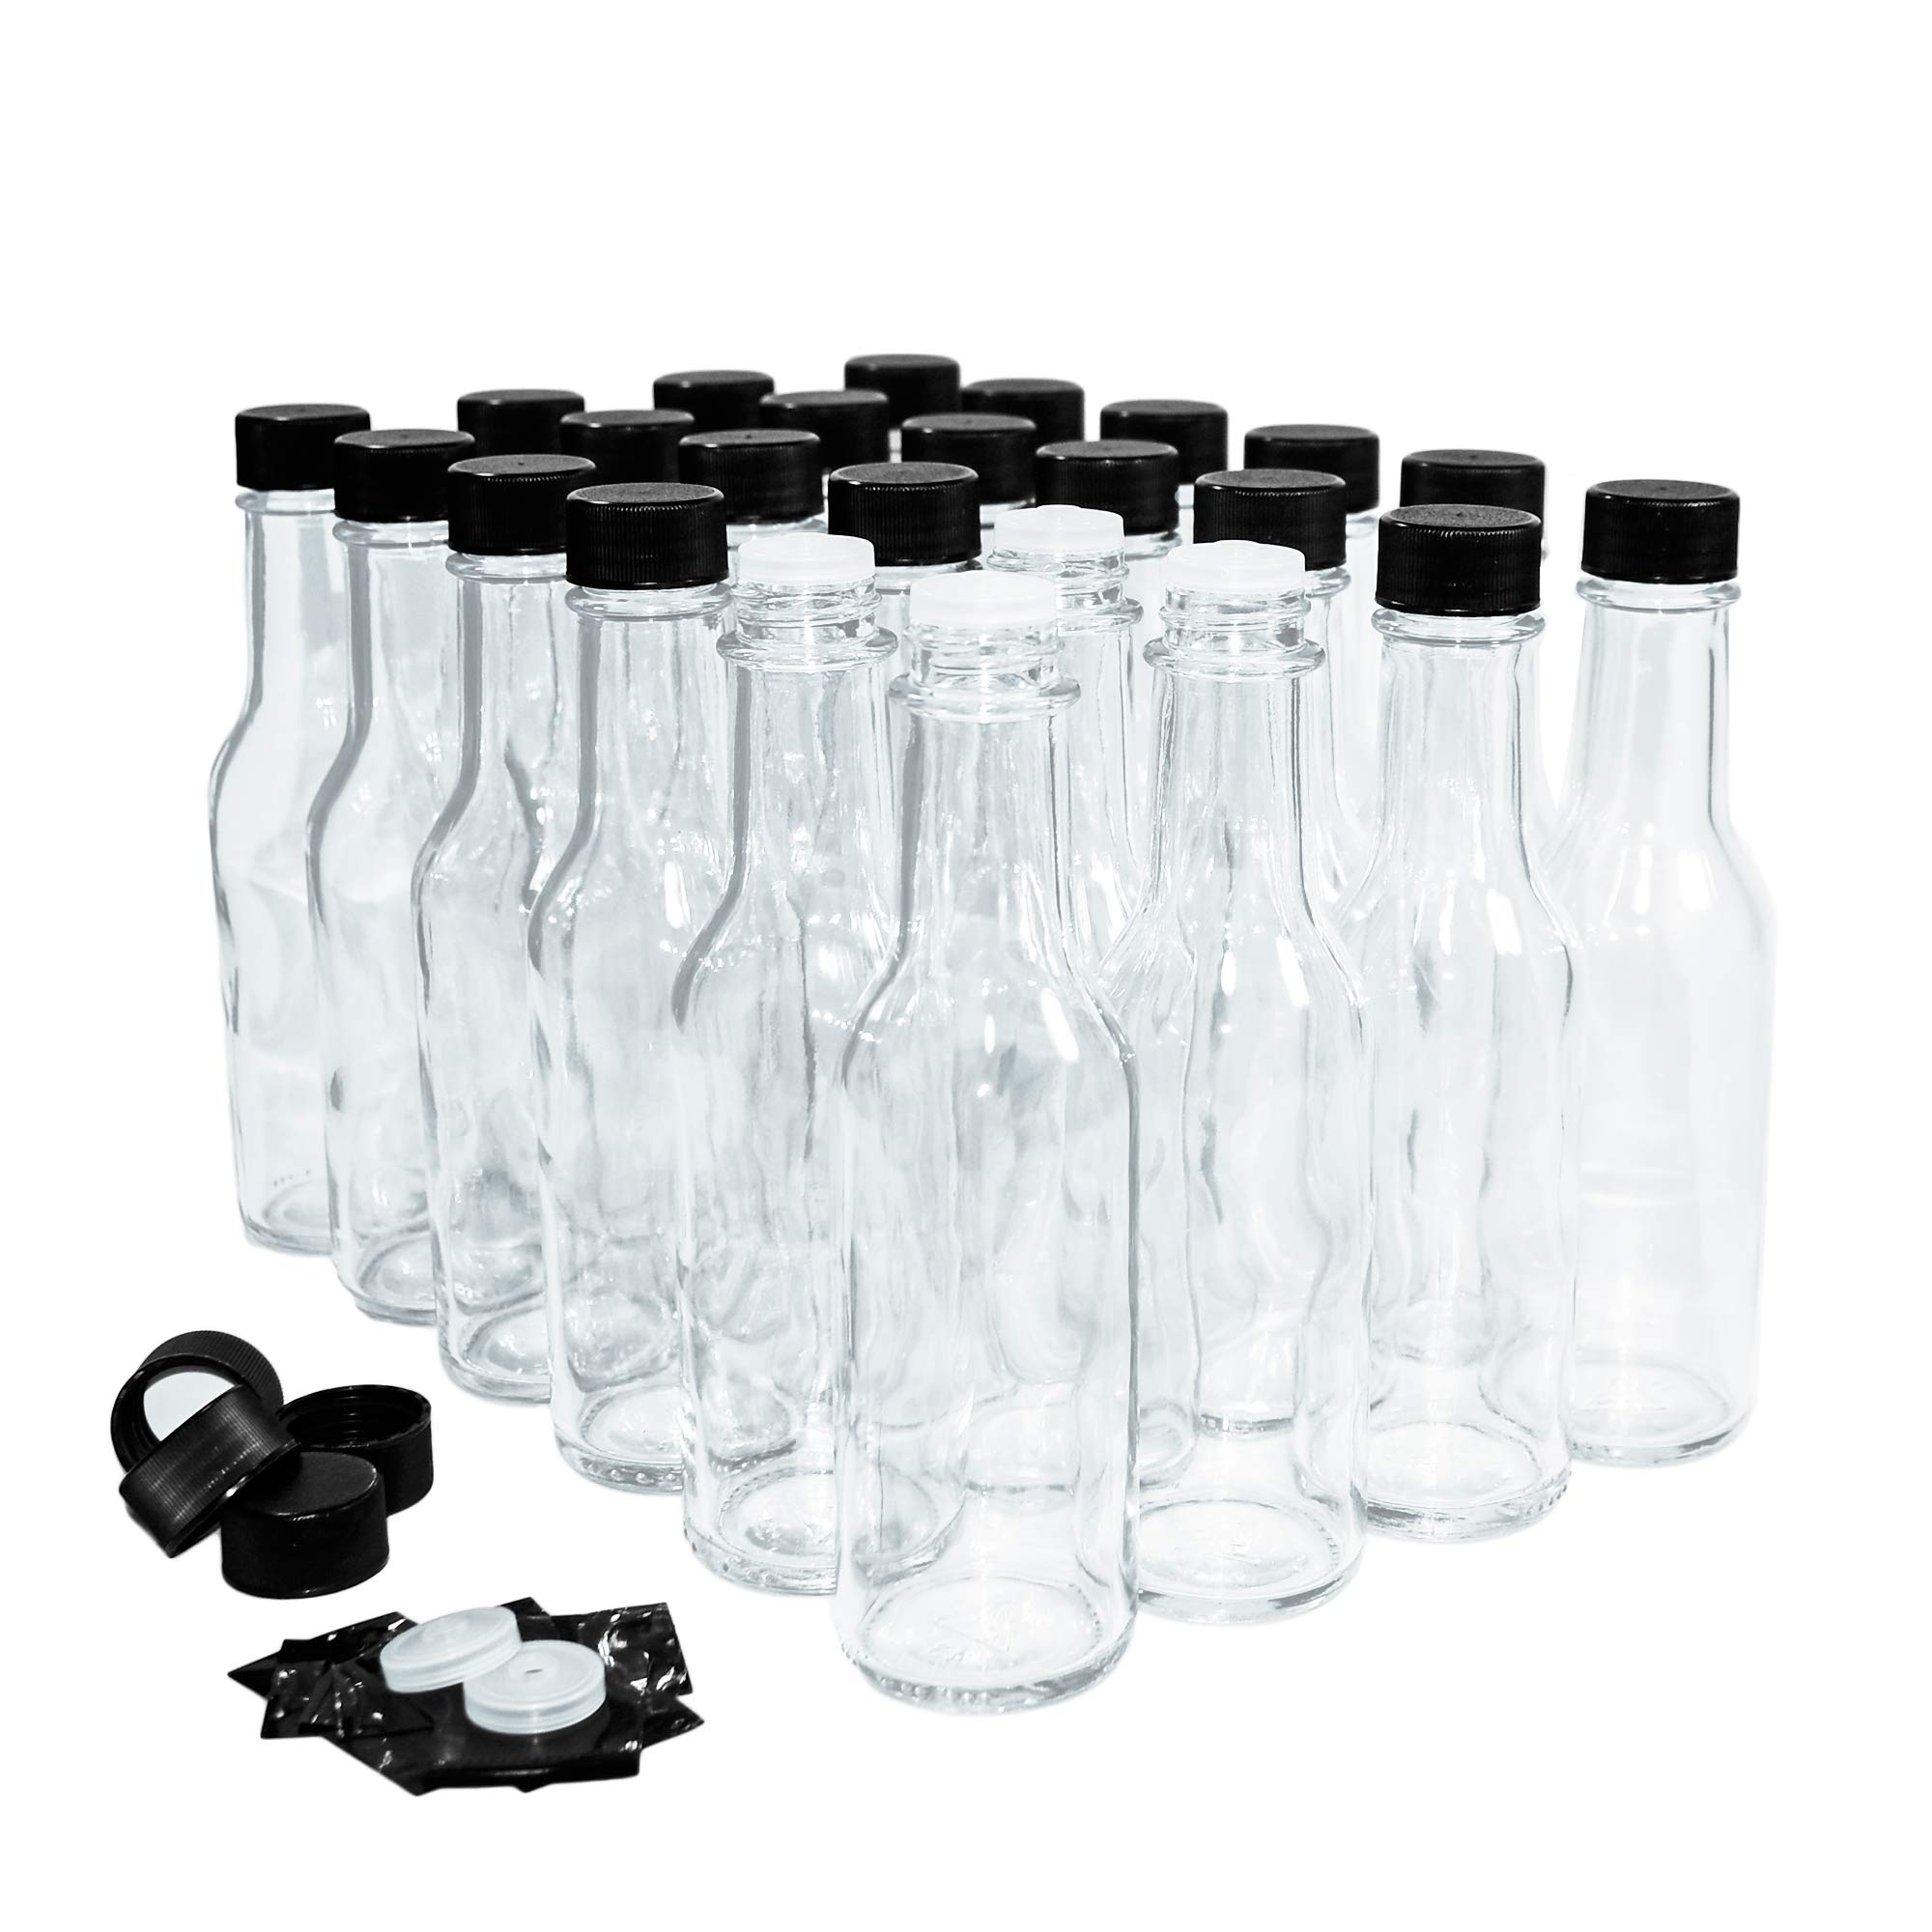 (24 Pack) 5 oz. Clear Glass Hot Sauce Bottle (woozy) with Black Cap + Shrink band and Orifice Reducer by GBO GLASSBOTTLEOUTLET.COM